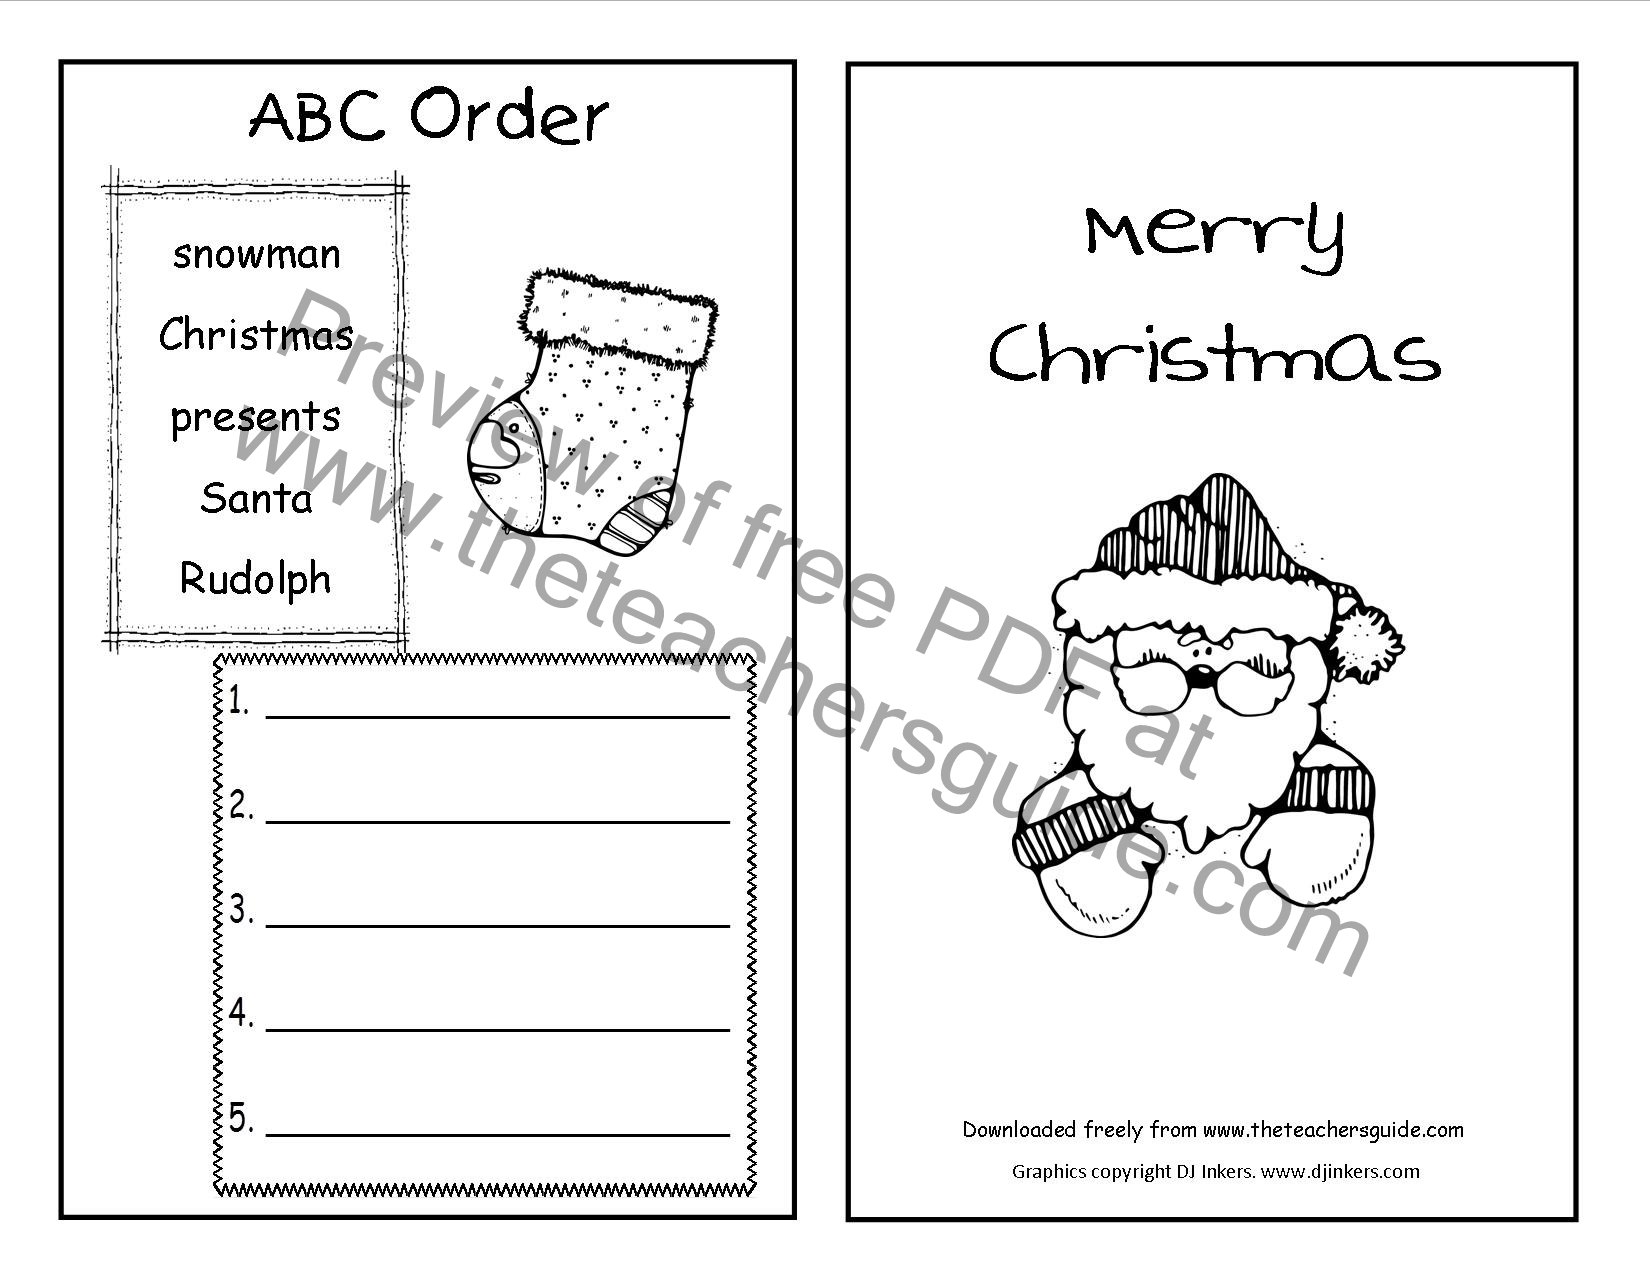 Christmas Printouts From The Teacher S Guide